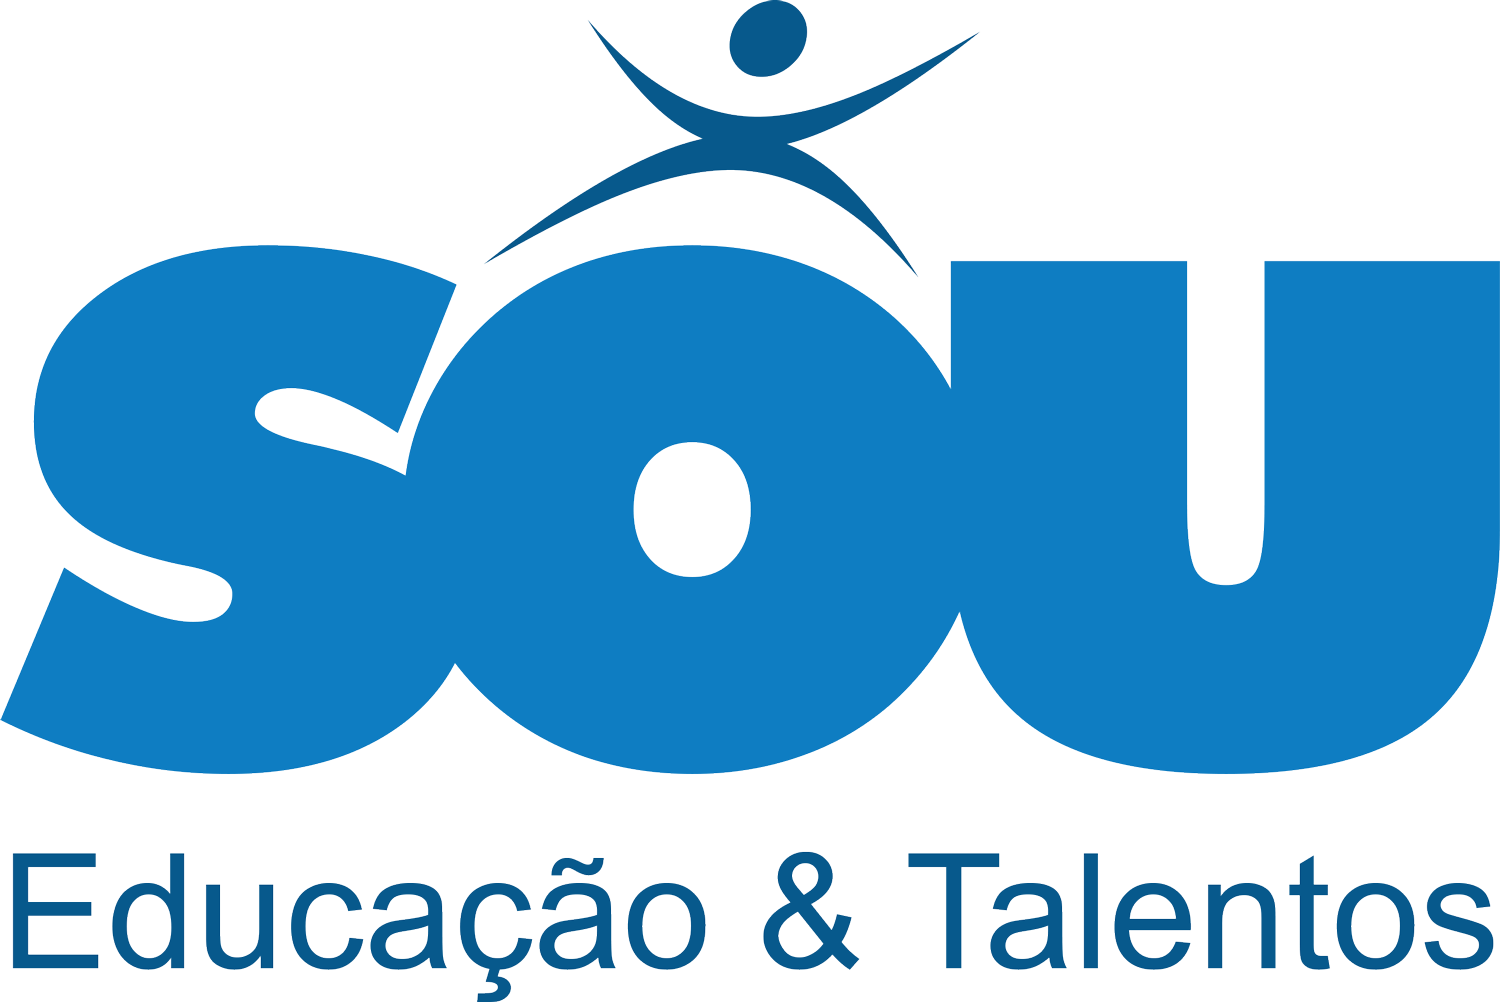 SOU is focused on serving its customers with excellence, contributing to the growth of organizations through the development of their employees.